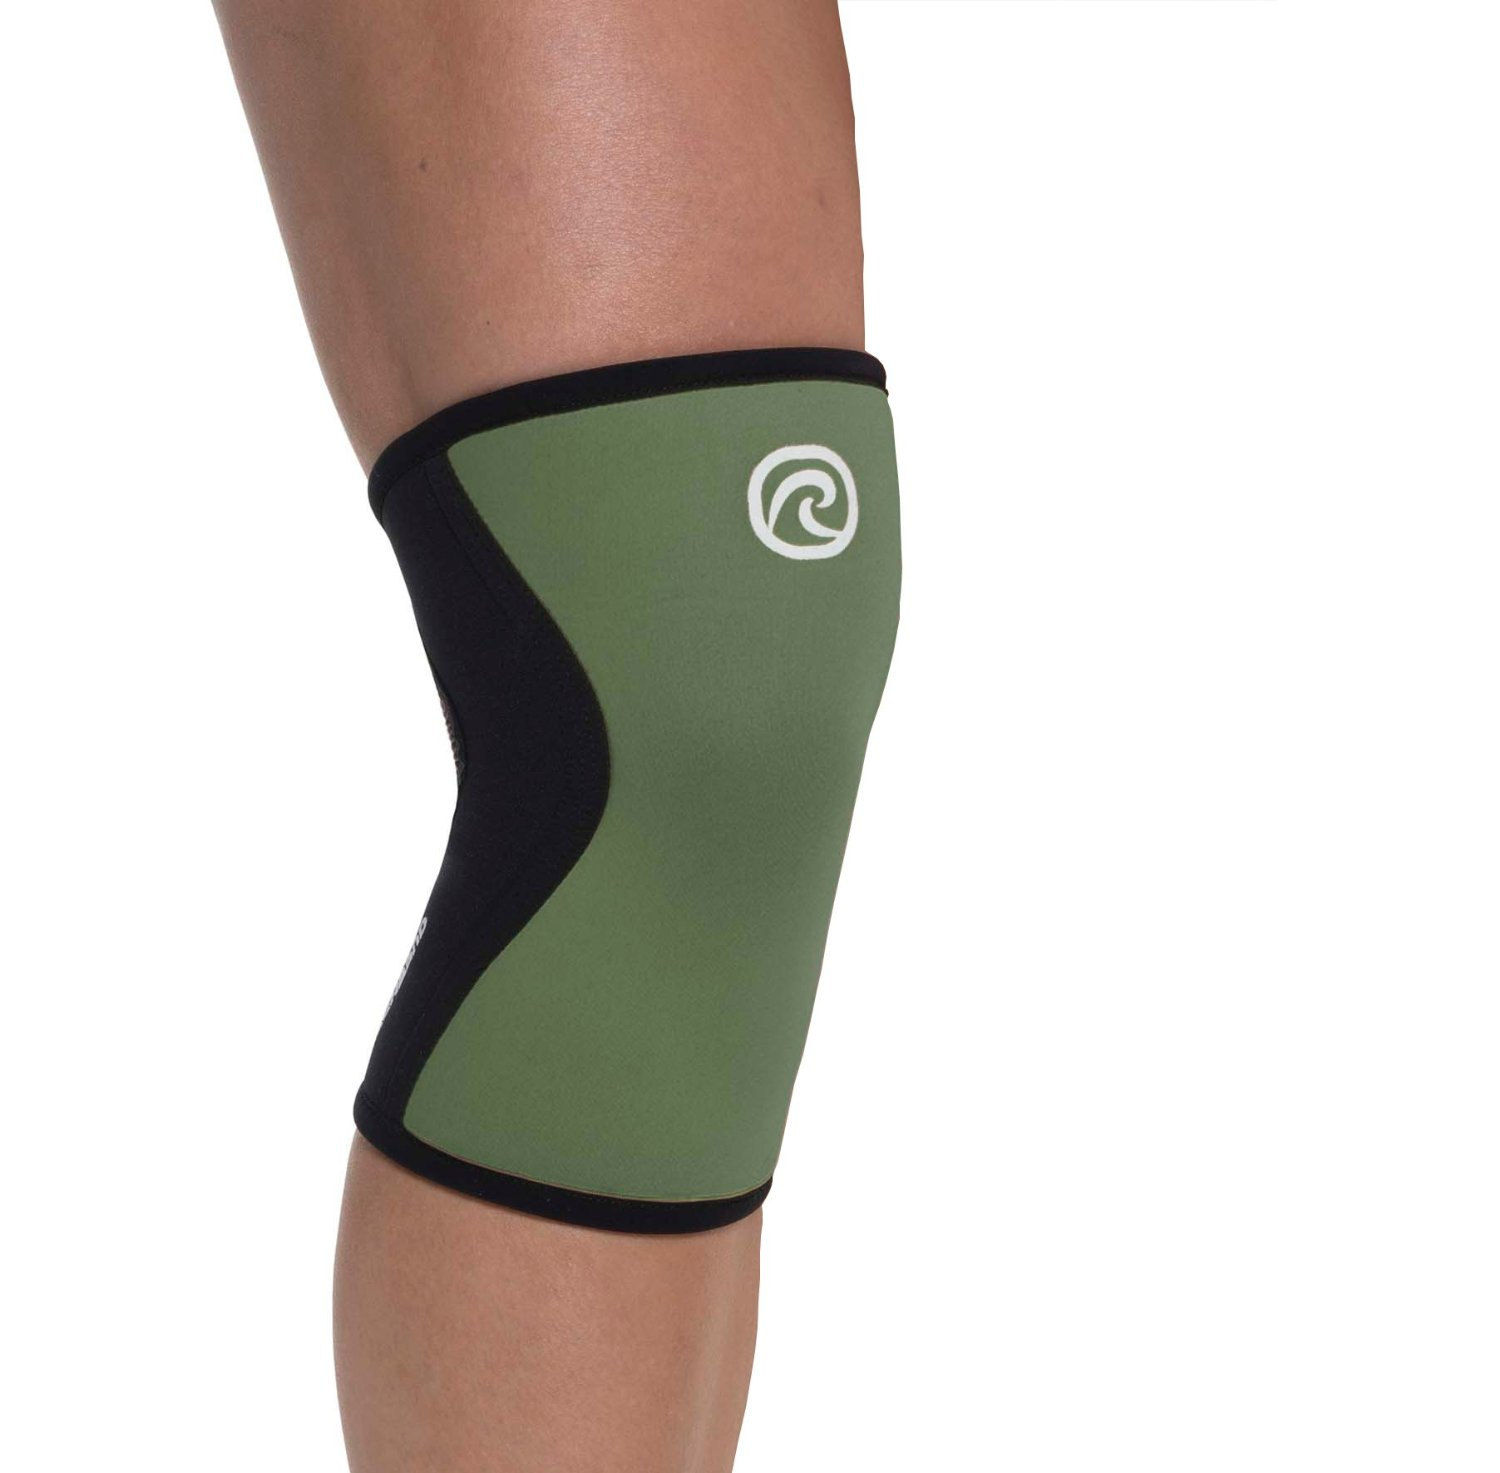 knee support B00NEAL78M